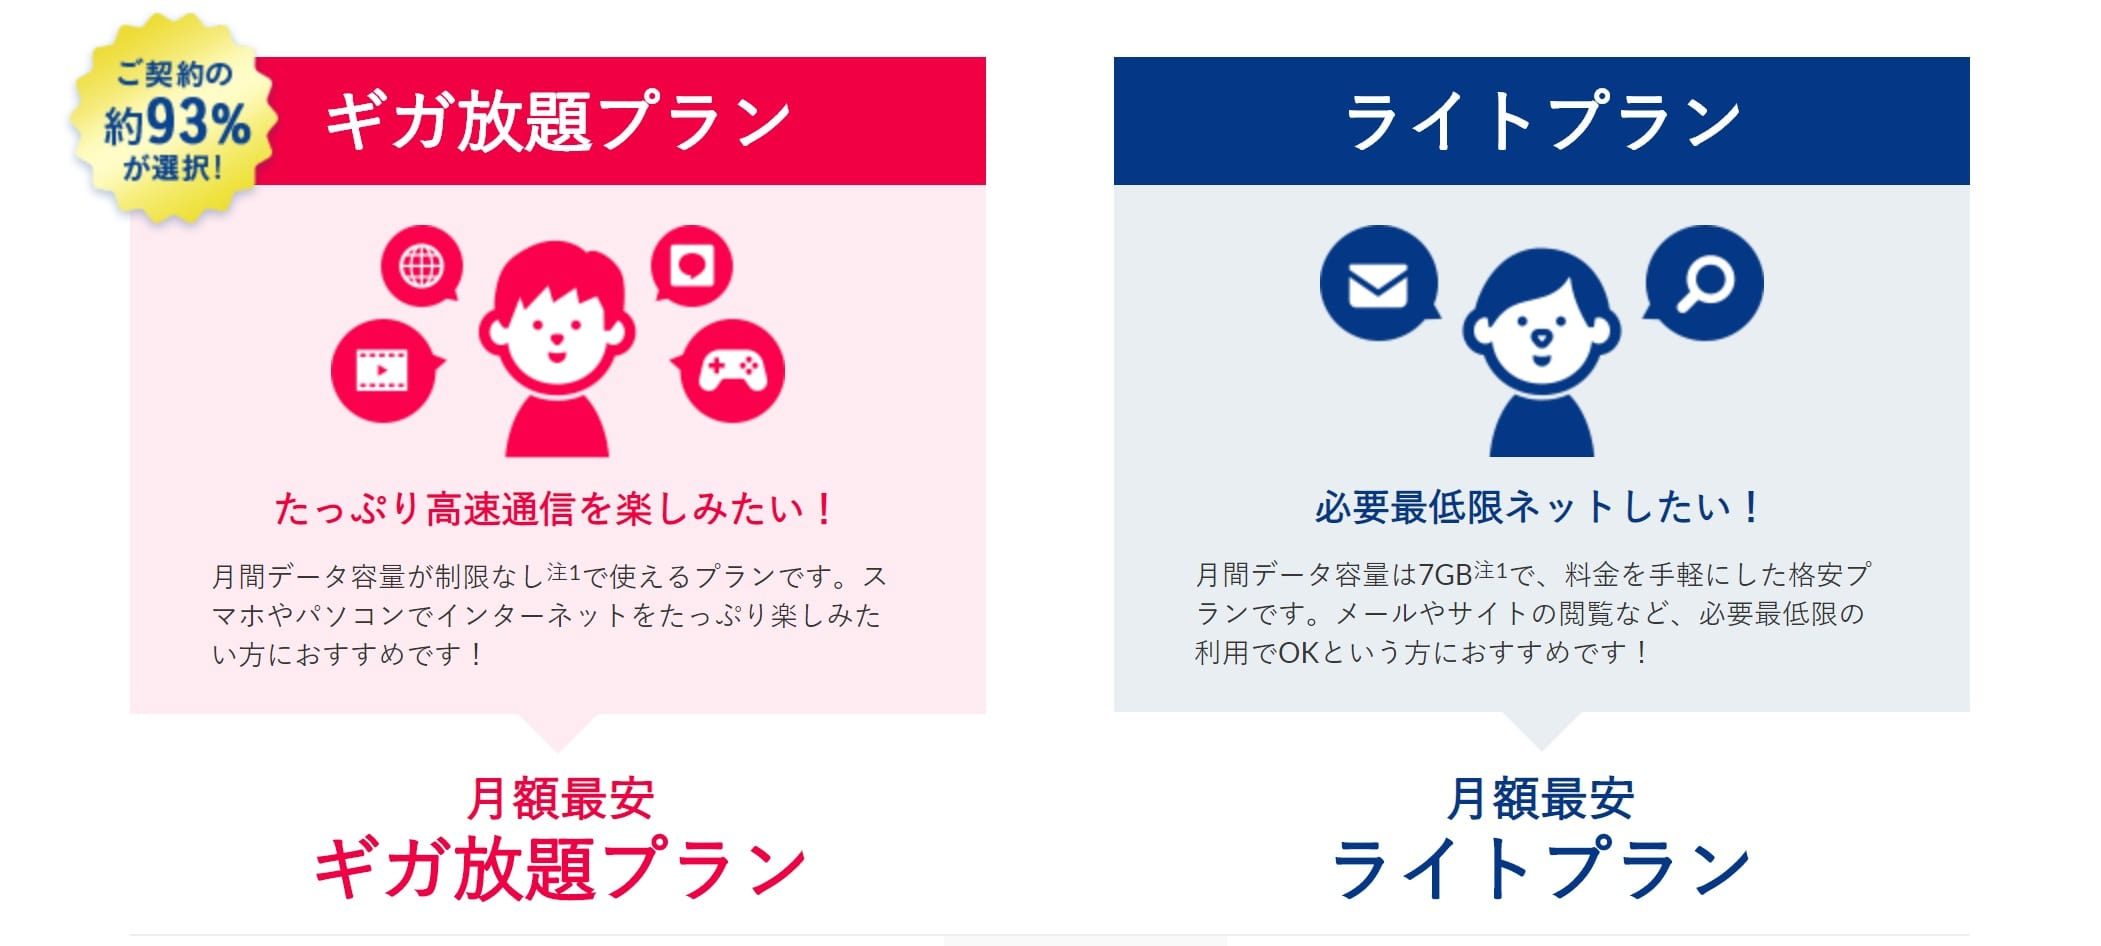 Broad WiMAXとはどんなWiMAX?